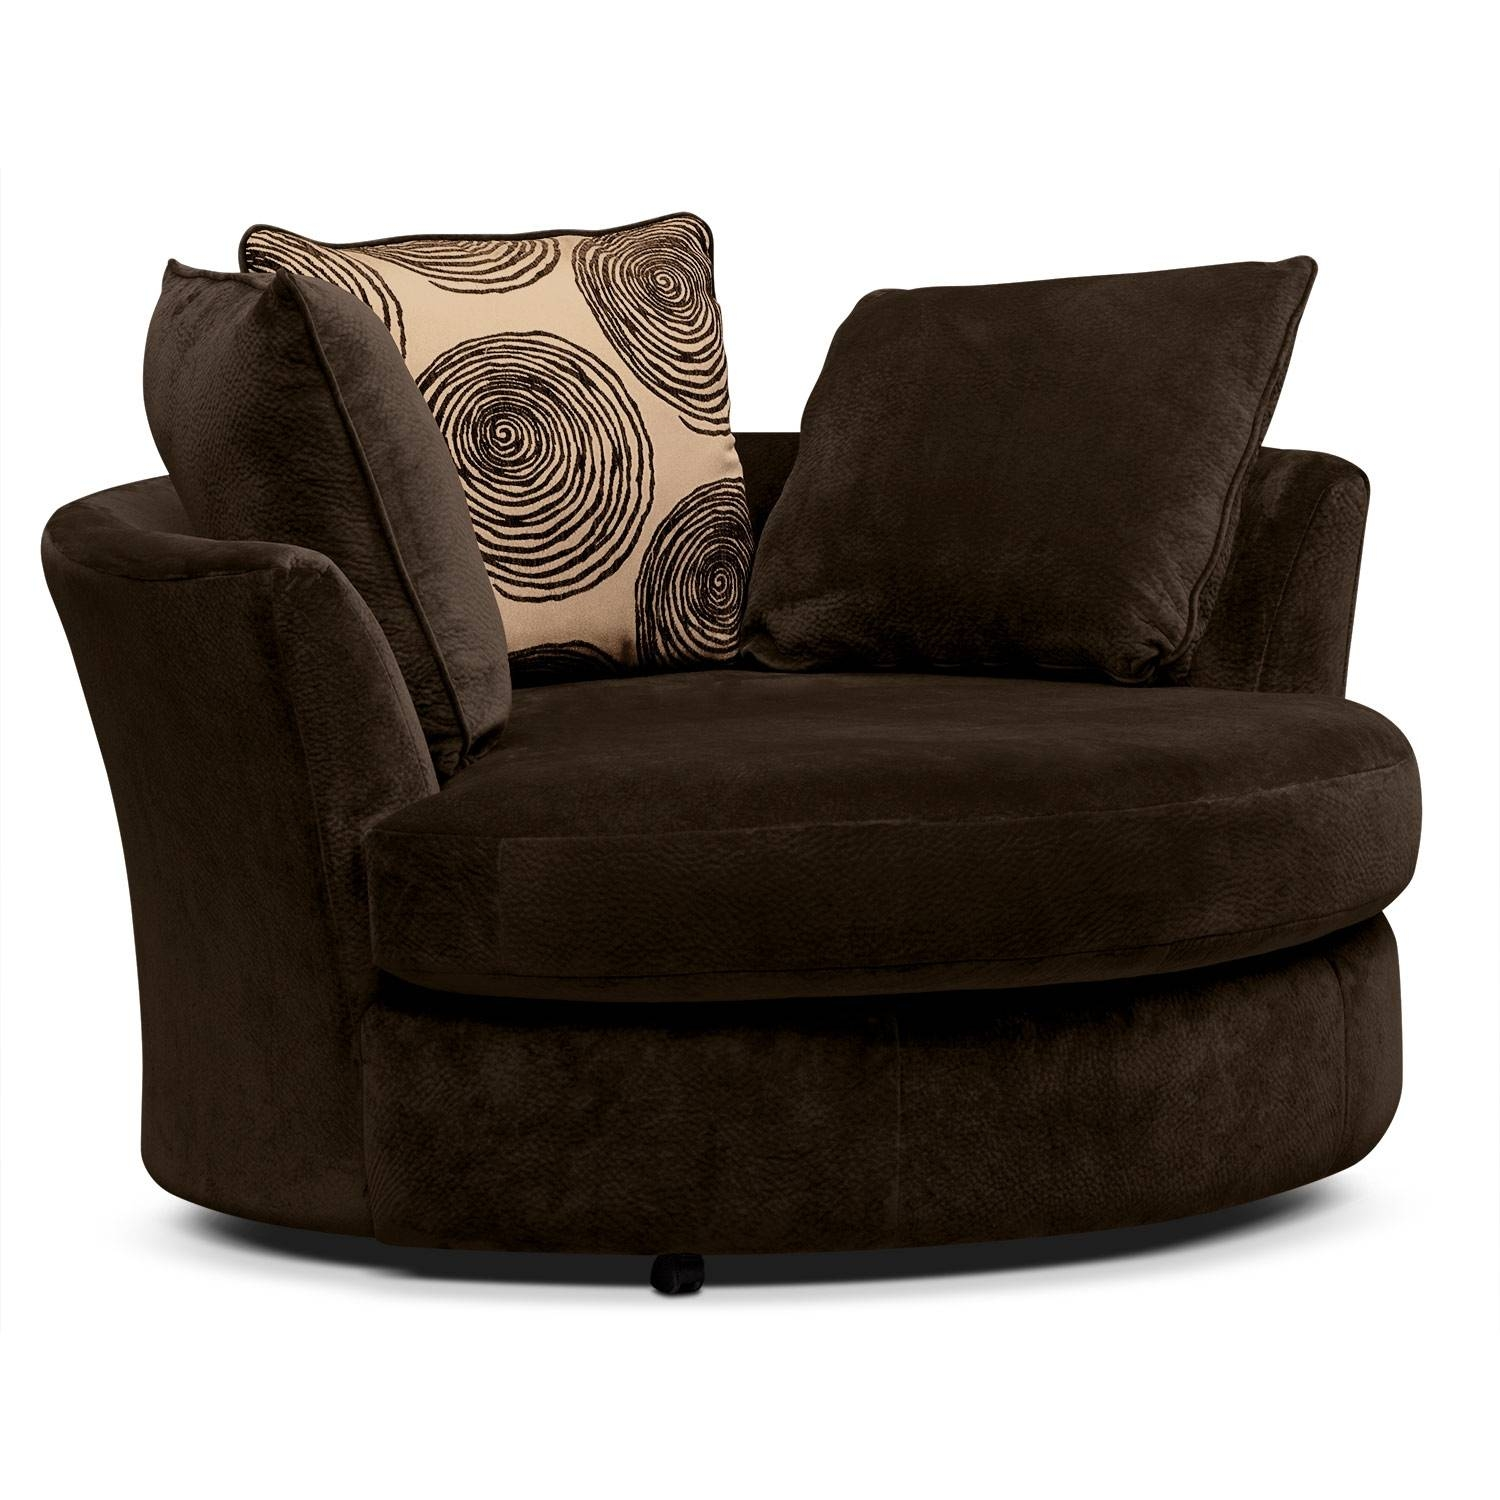 Sofas Center : Semi Circular Sectional Sofa Uk Shocking Round throughout Round Sofas (Image 26 of 30)